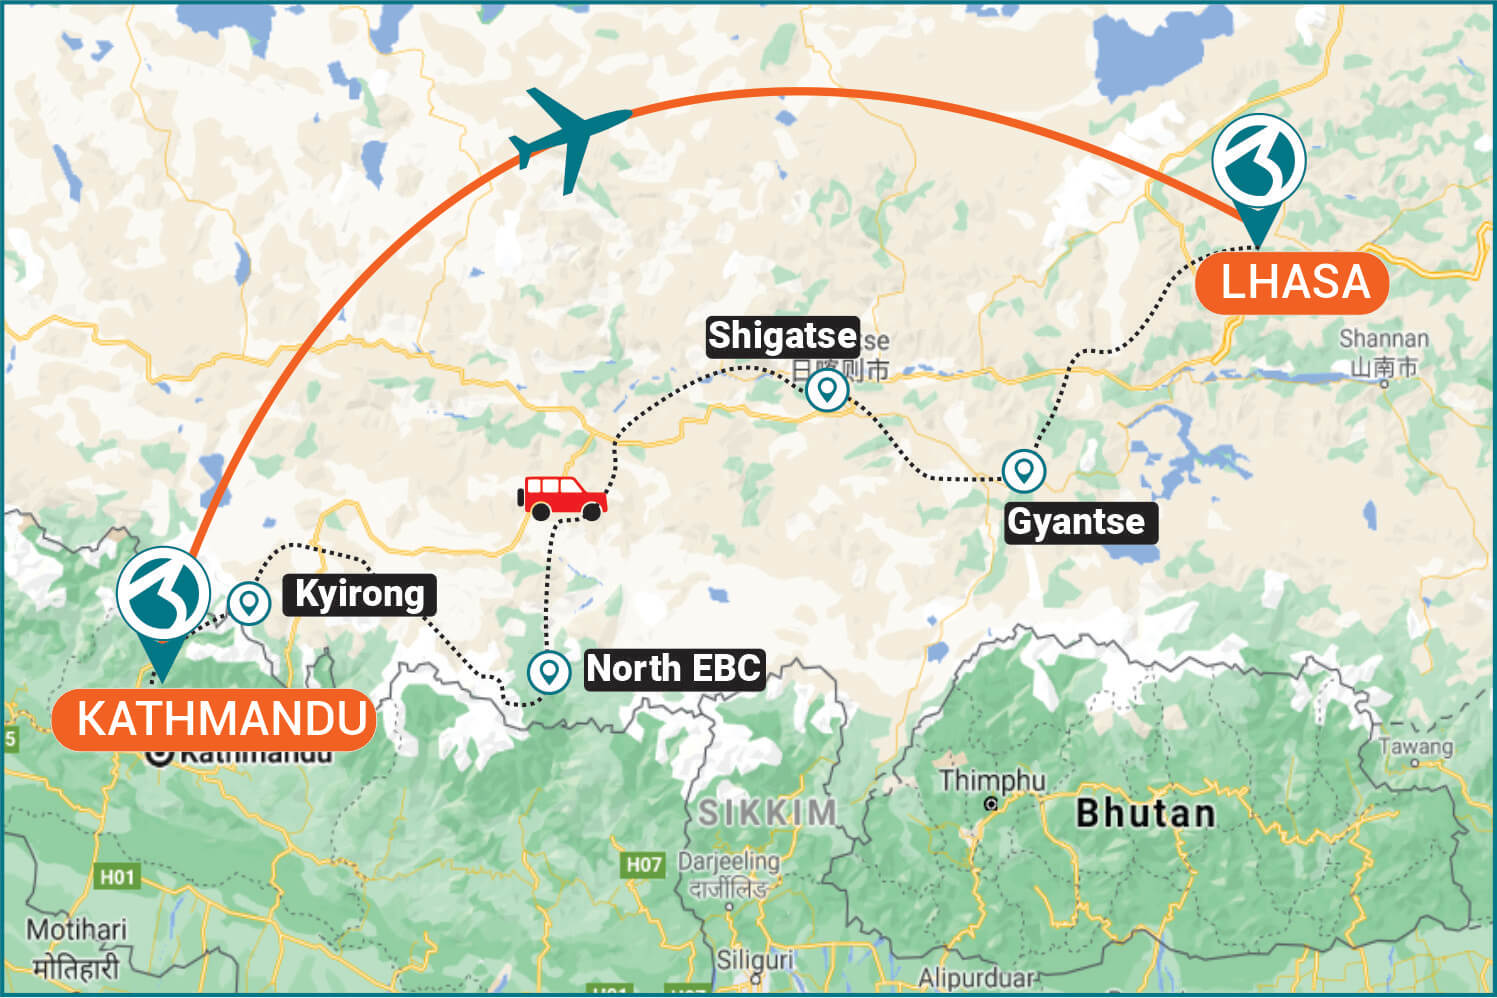 Route for Travel From Kathmandu To Lhasa